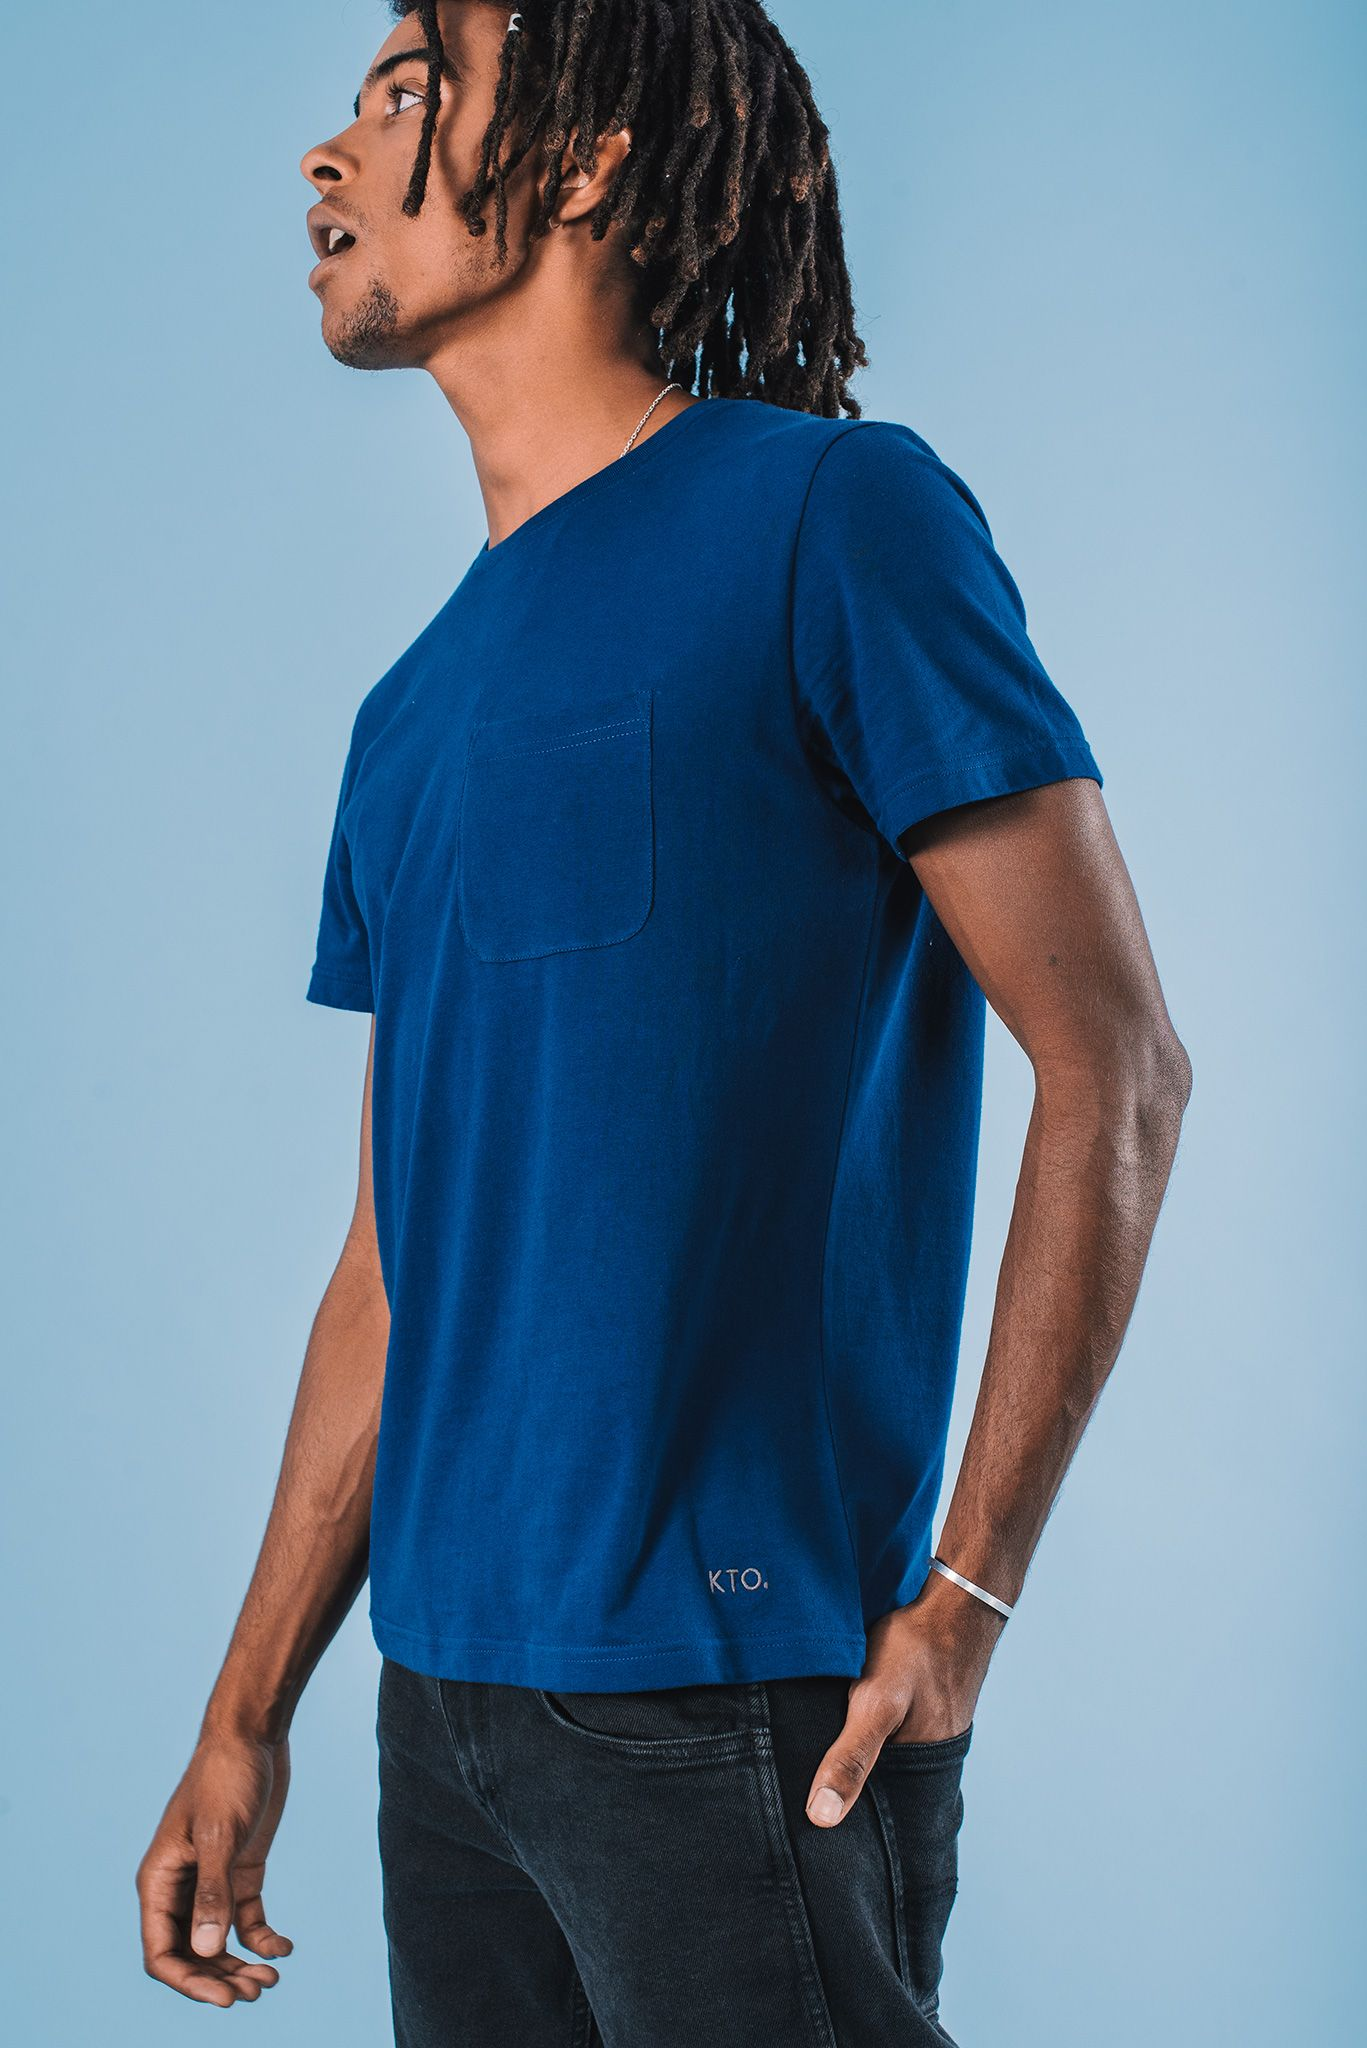 e724ee21 Blue Pocket Foundation Tee #shop #ethicalfashion #fashion #ecofriendly  #sustainable